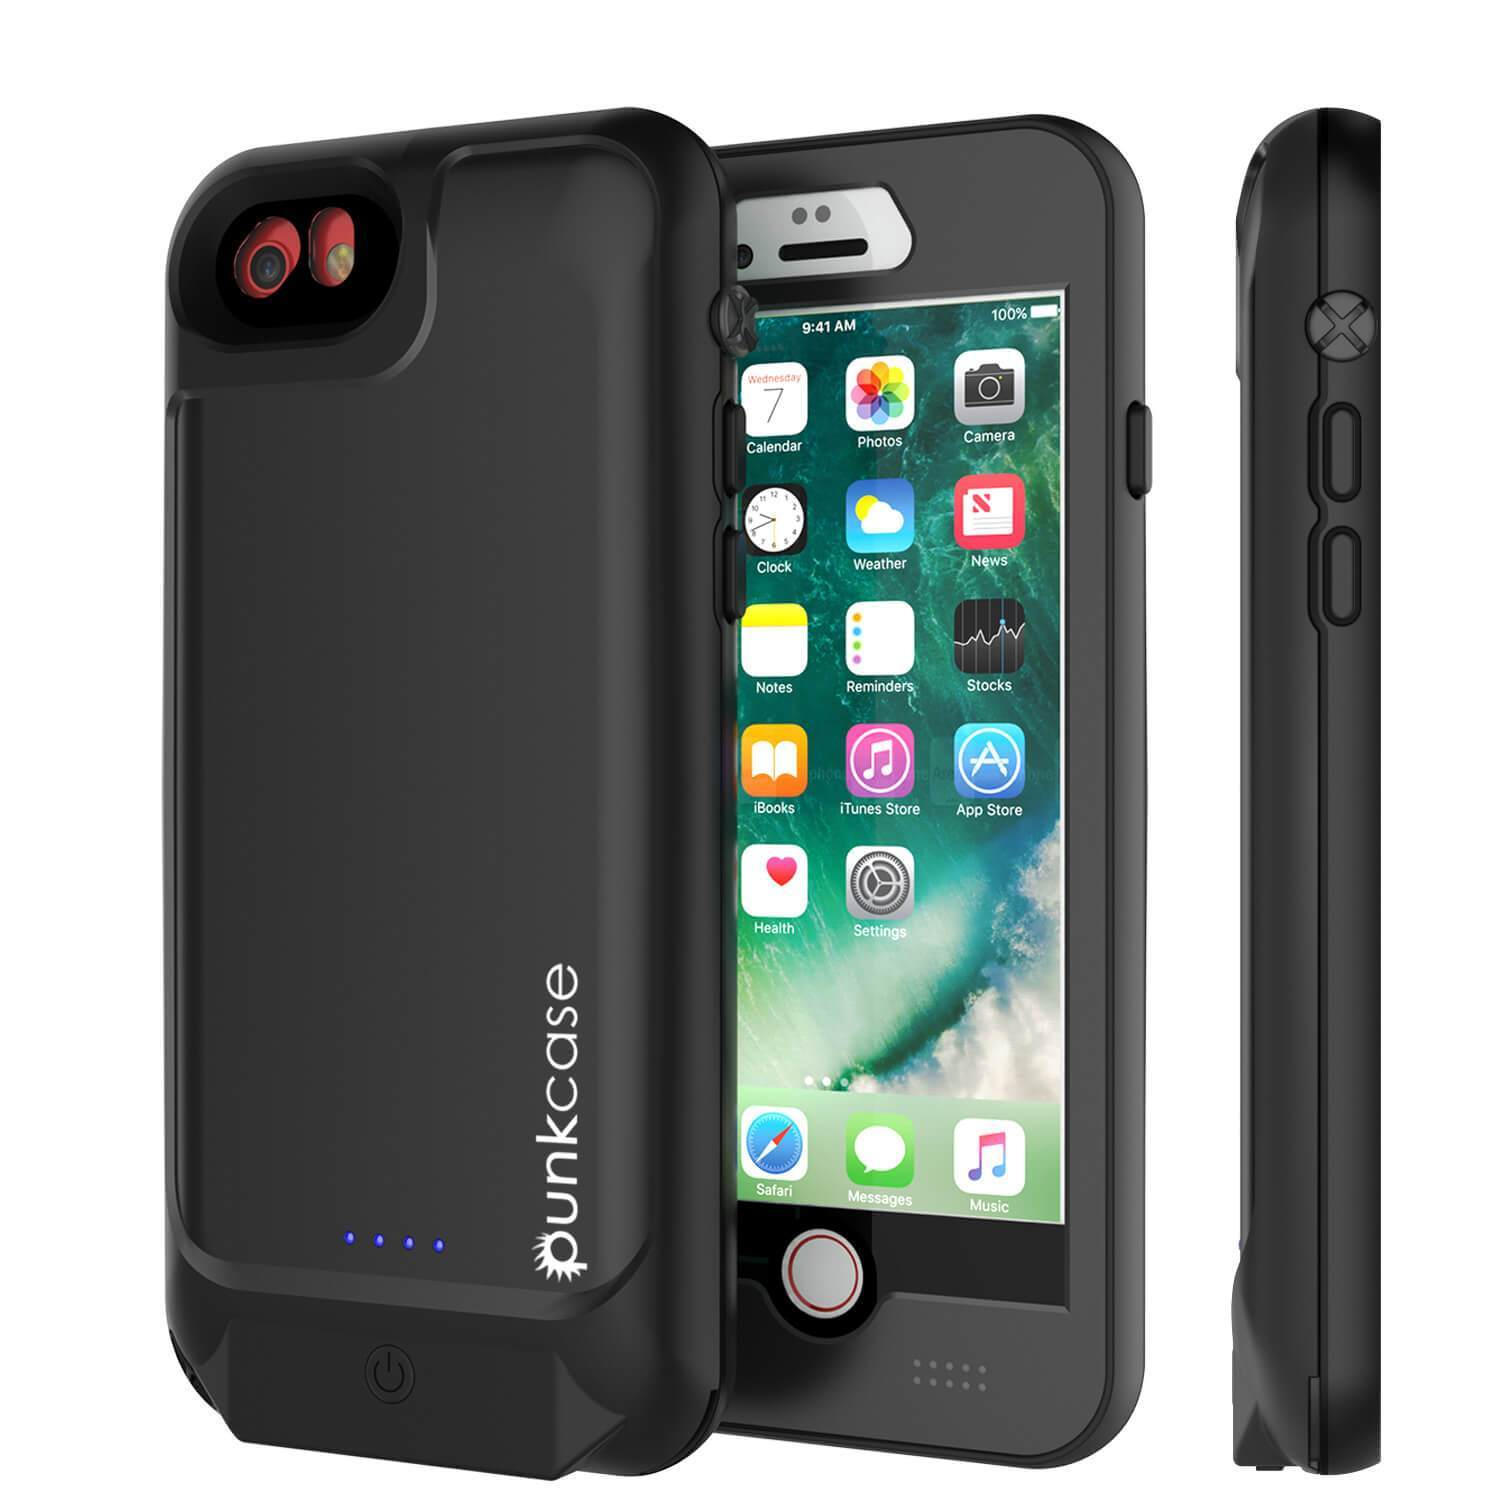 "PunkJuice iPhone SE (4.7"")/7 Battery Case Black - Waterproof Slim Power Juice Bank with 2750mAh"